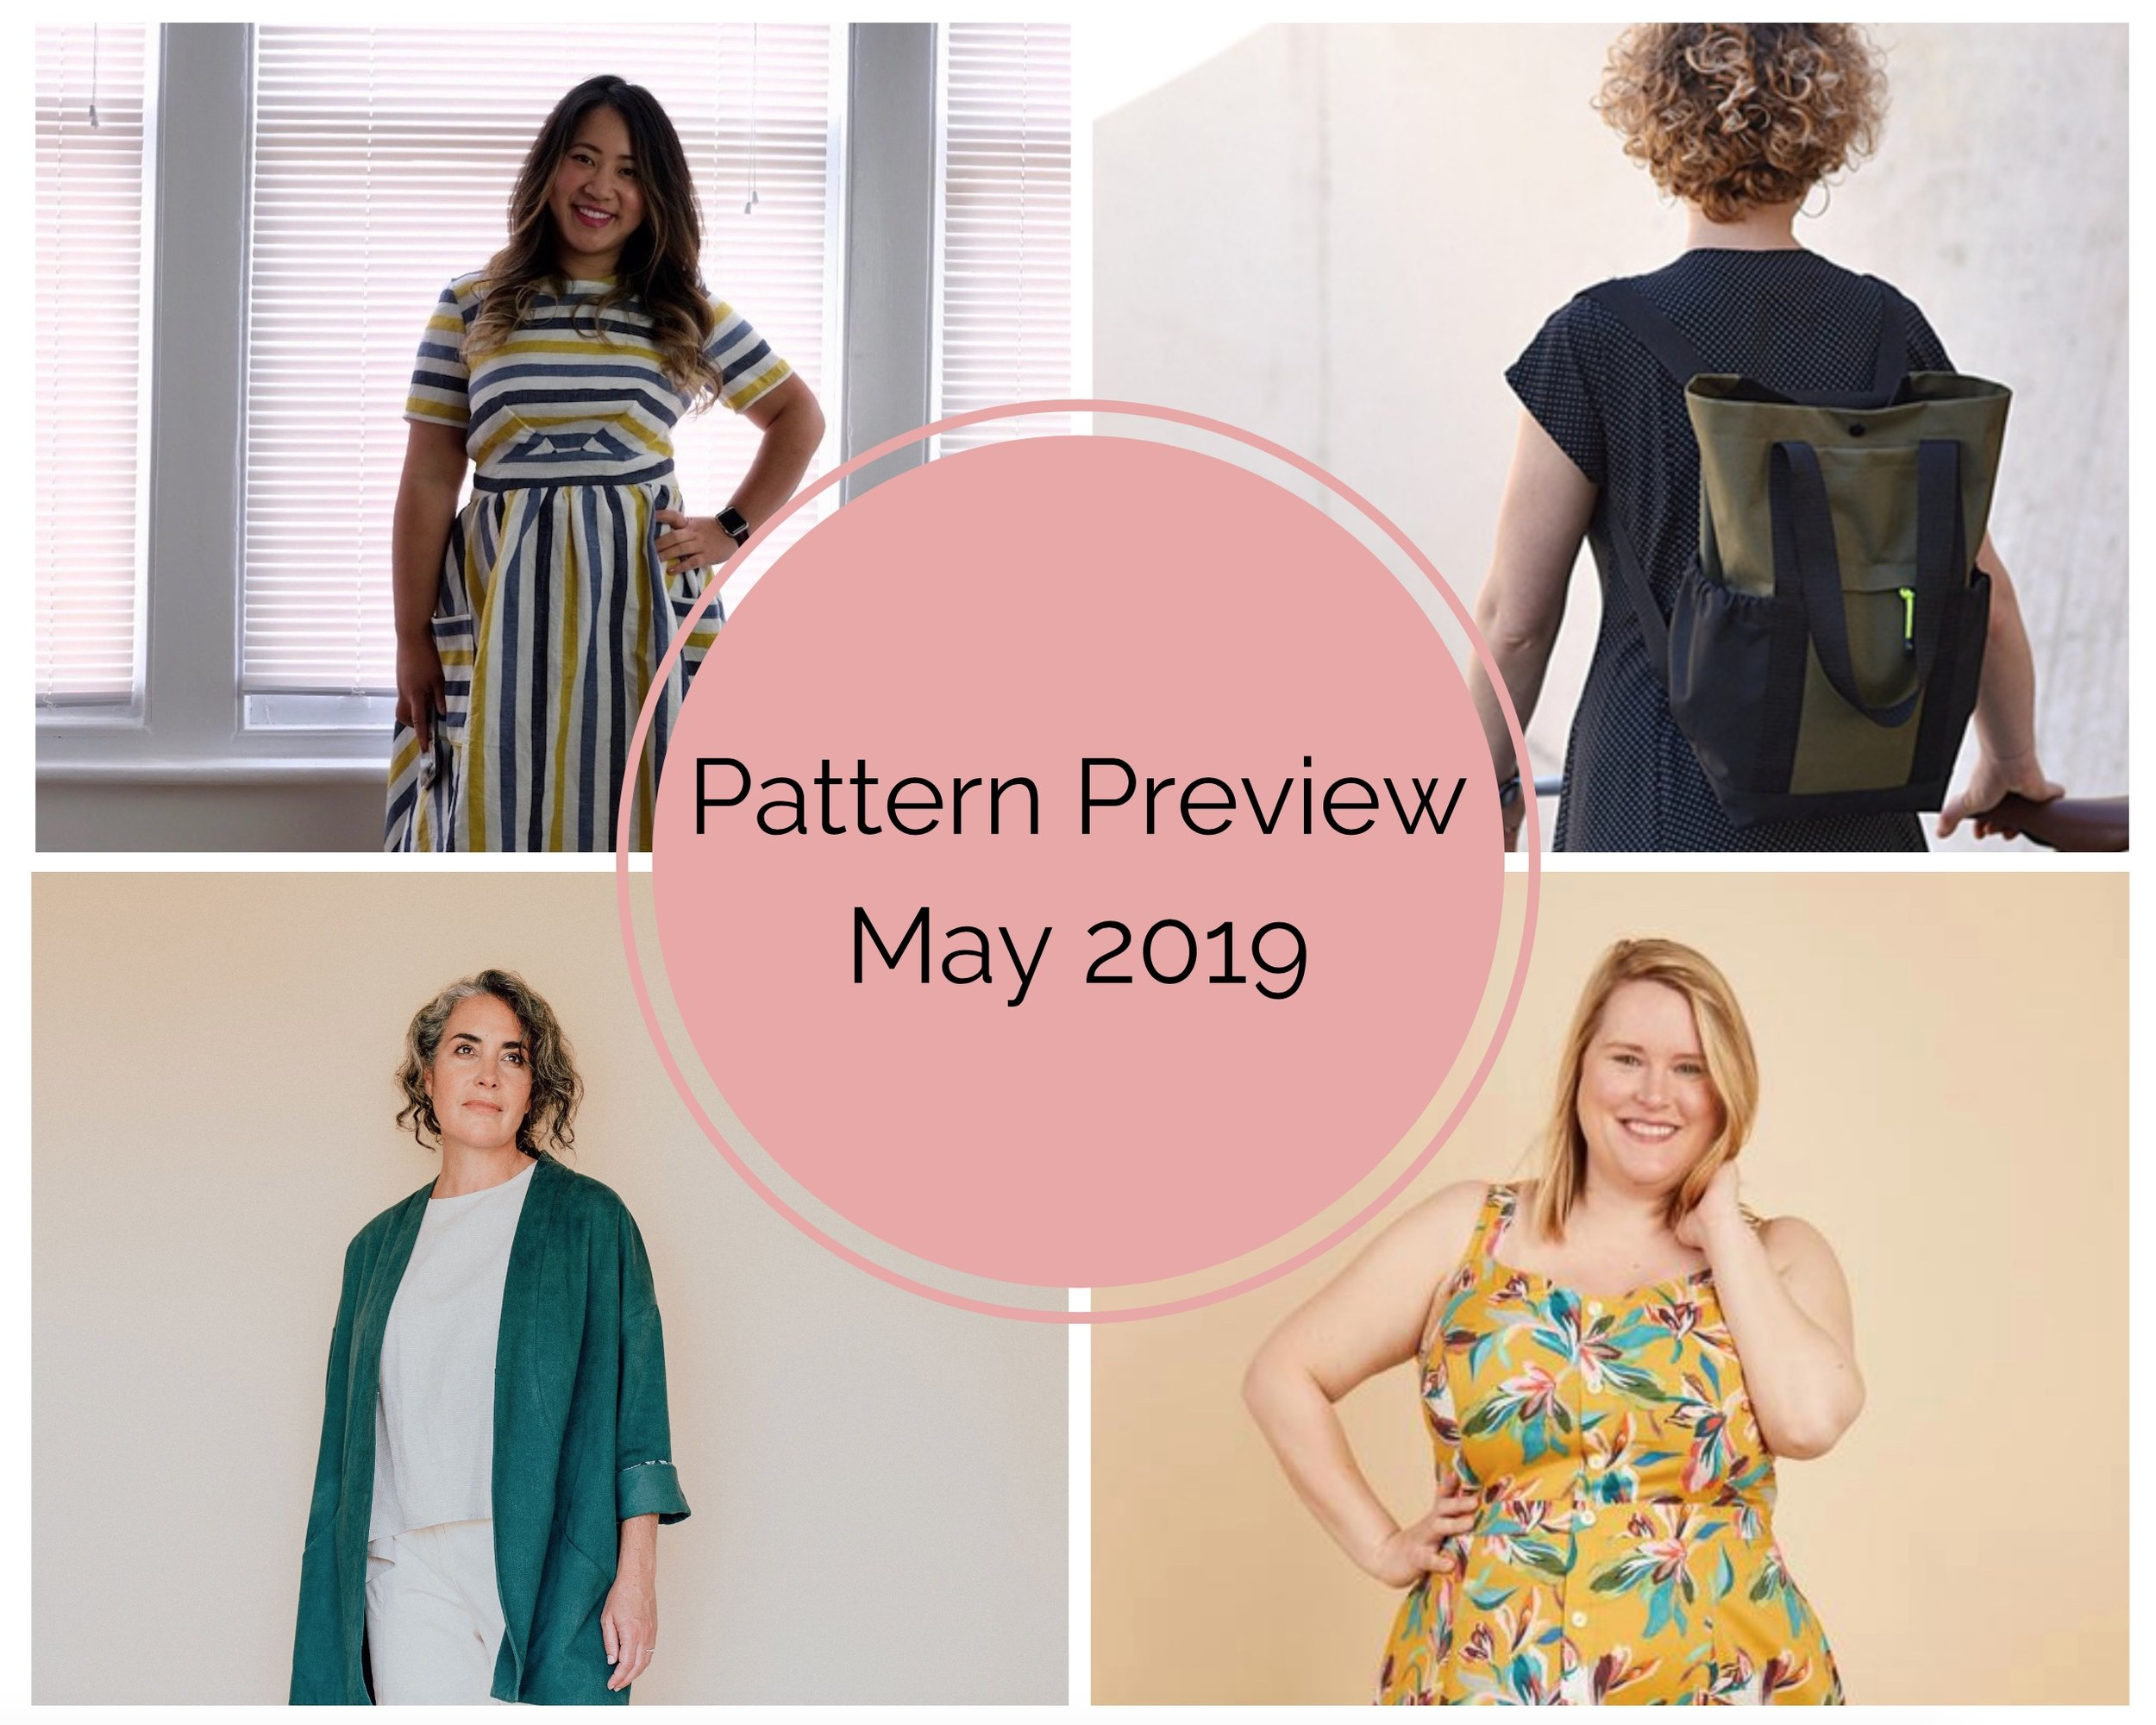 Pattern Preview May 2019